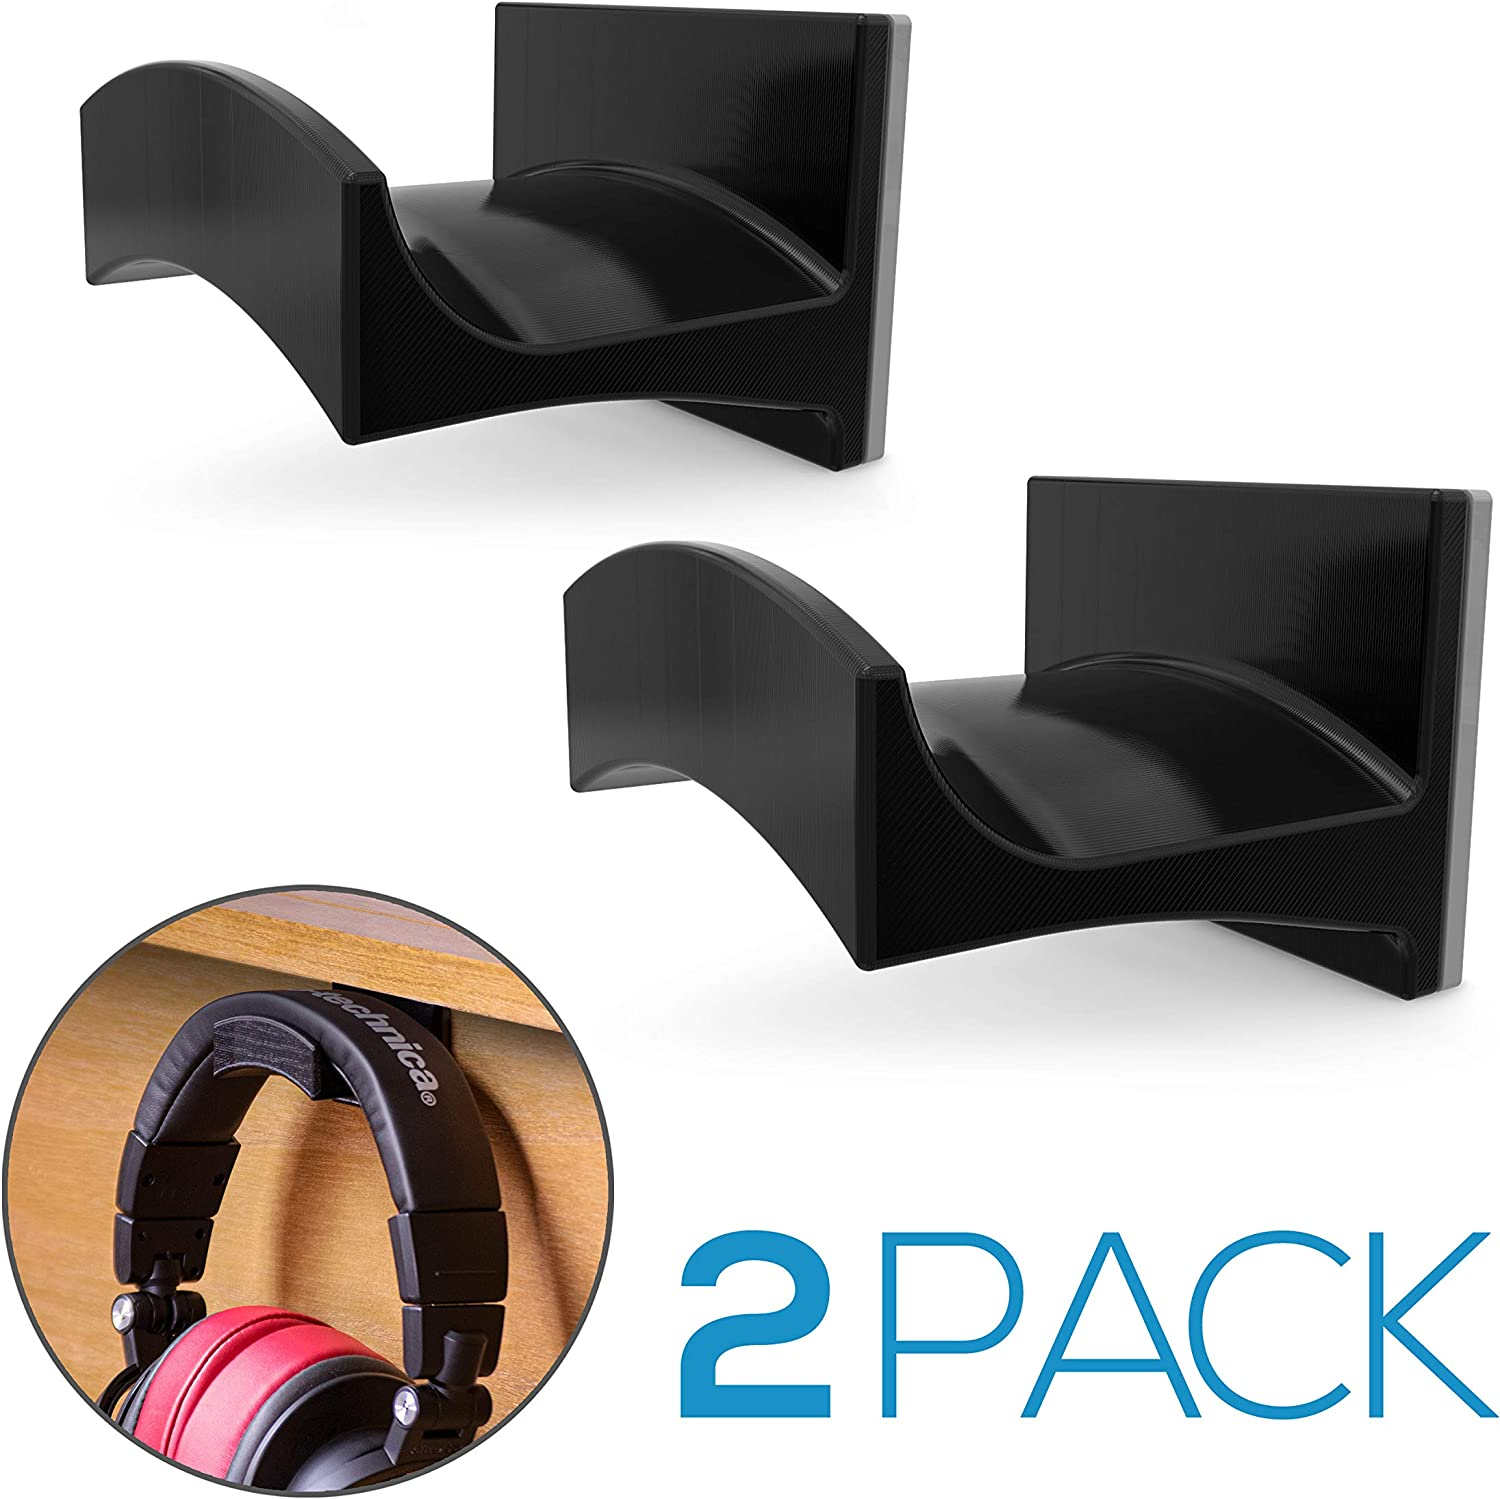 Brainwavz Cradle Large - 2PK - Headphone Hanger, Universal Stand for Sennheiser, Sony, Bose, Beats, AKG, Audio-Technica, Gaming Controller, Cables, Gamepad & Other Gaming Accessories